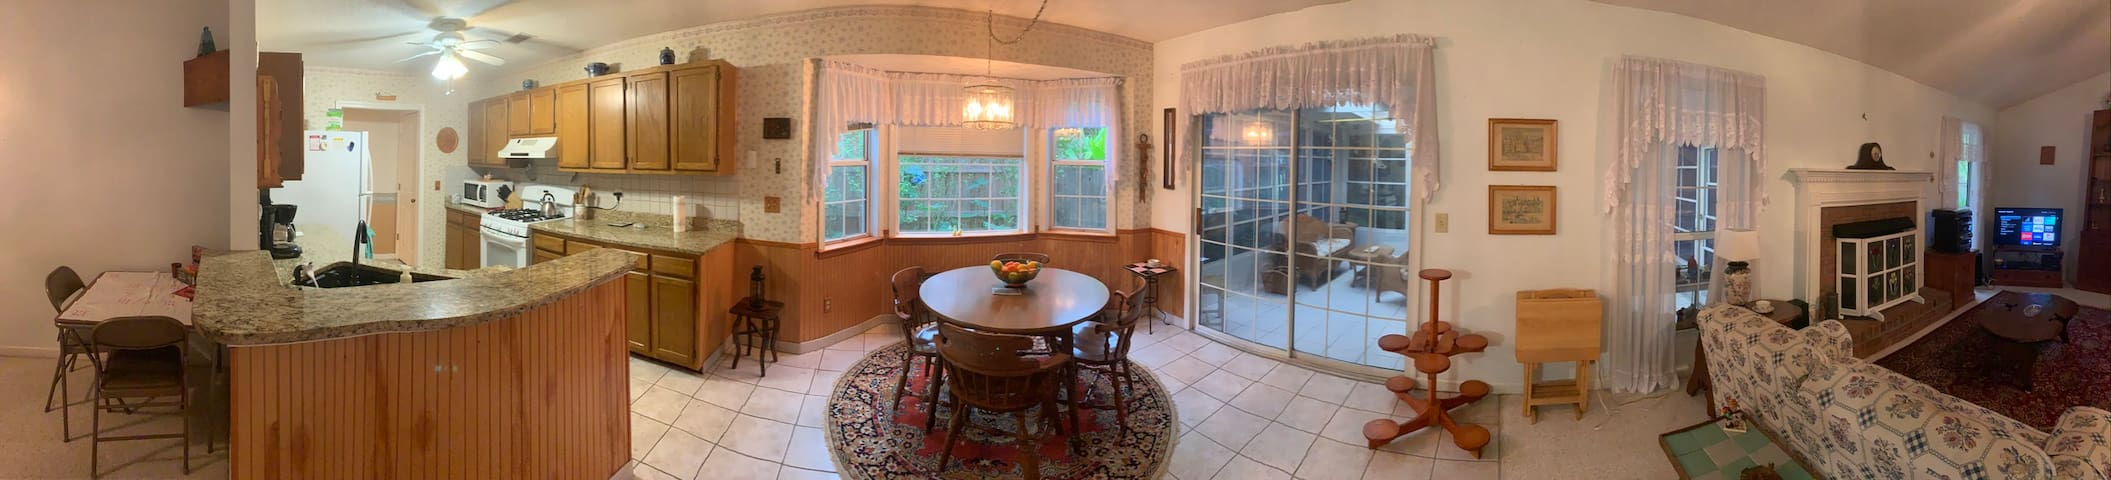 Antique Cottage cozy 3 bed 2 bath fully equipped